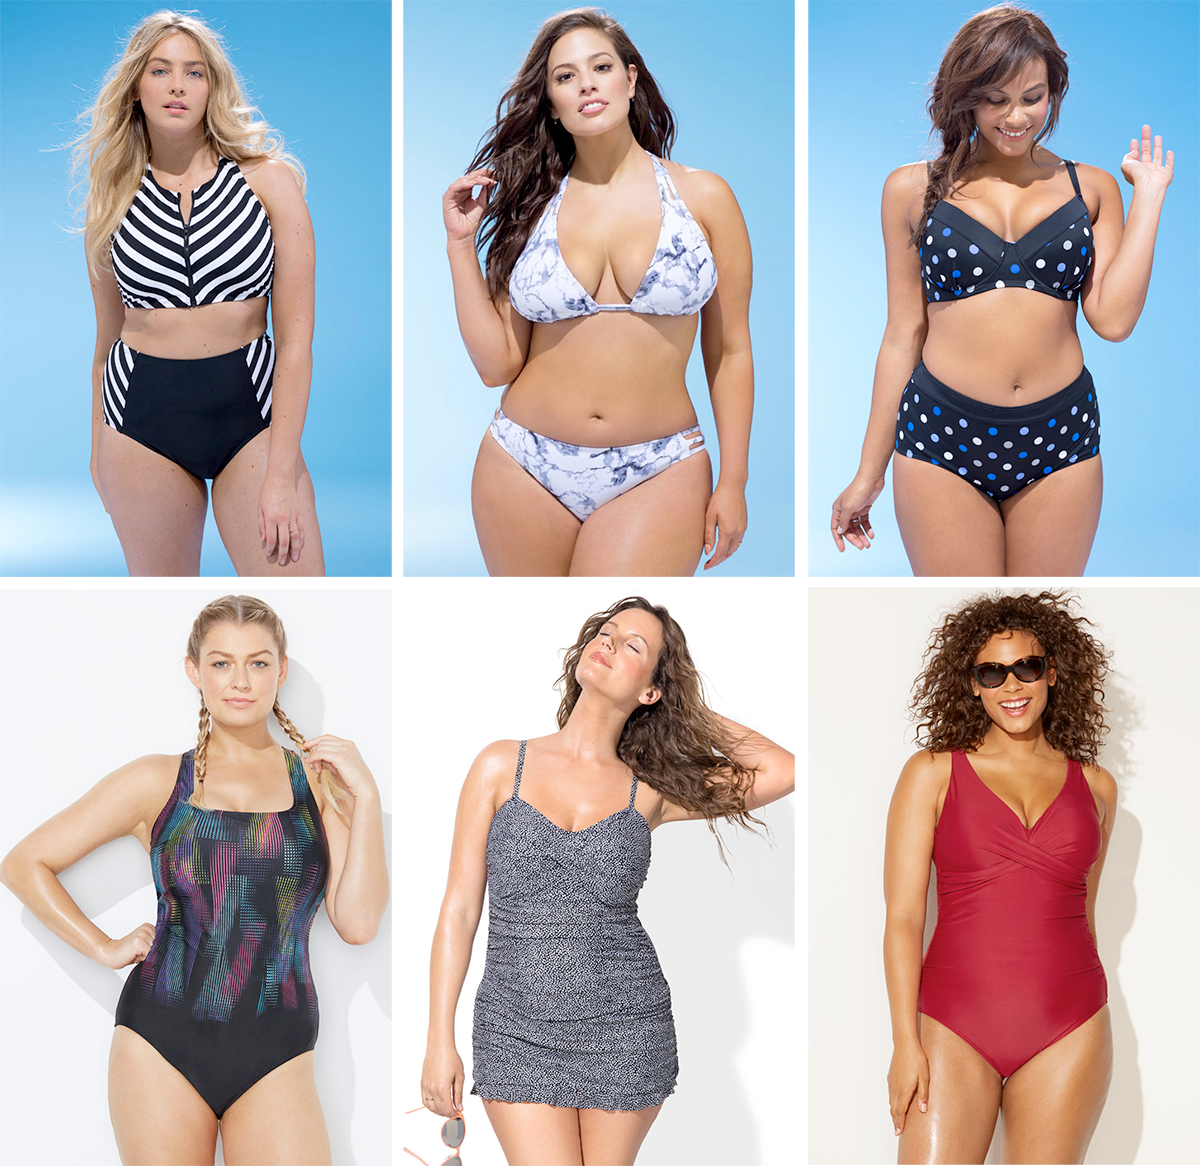 Plus size swimsuit special 2017 // Speedster Bikini, USD $53.20 from Swimsuits For All | Beach Babe Marble Bikini, USD $47.60 from Swimsuits For All | Director Underwire Bikini, USD $50.40 | Chlorine Resistant Litebrite X-Back Swimsuit, USD $46.20 from Swimsuits For All | Bedrock Ruffle Swimdress, USD $54.60 from Swimsuits For All | Sangria V-Neck Swimsuit, USD $50.40 from Swimsuits For All